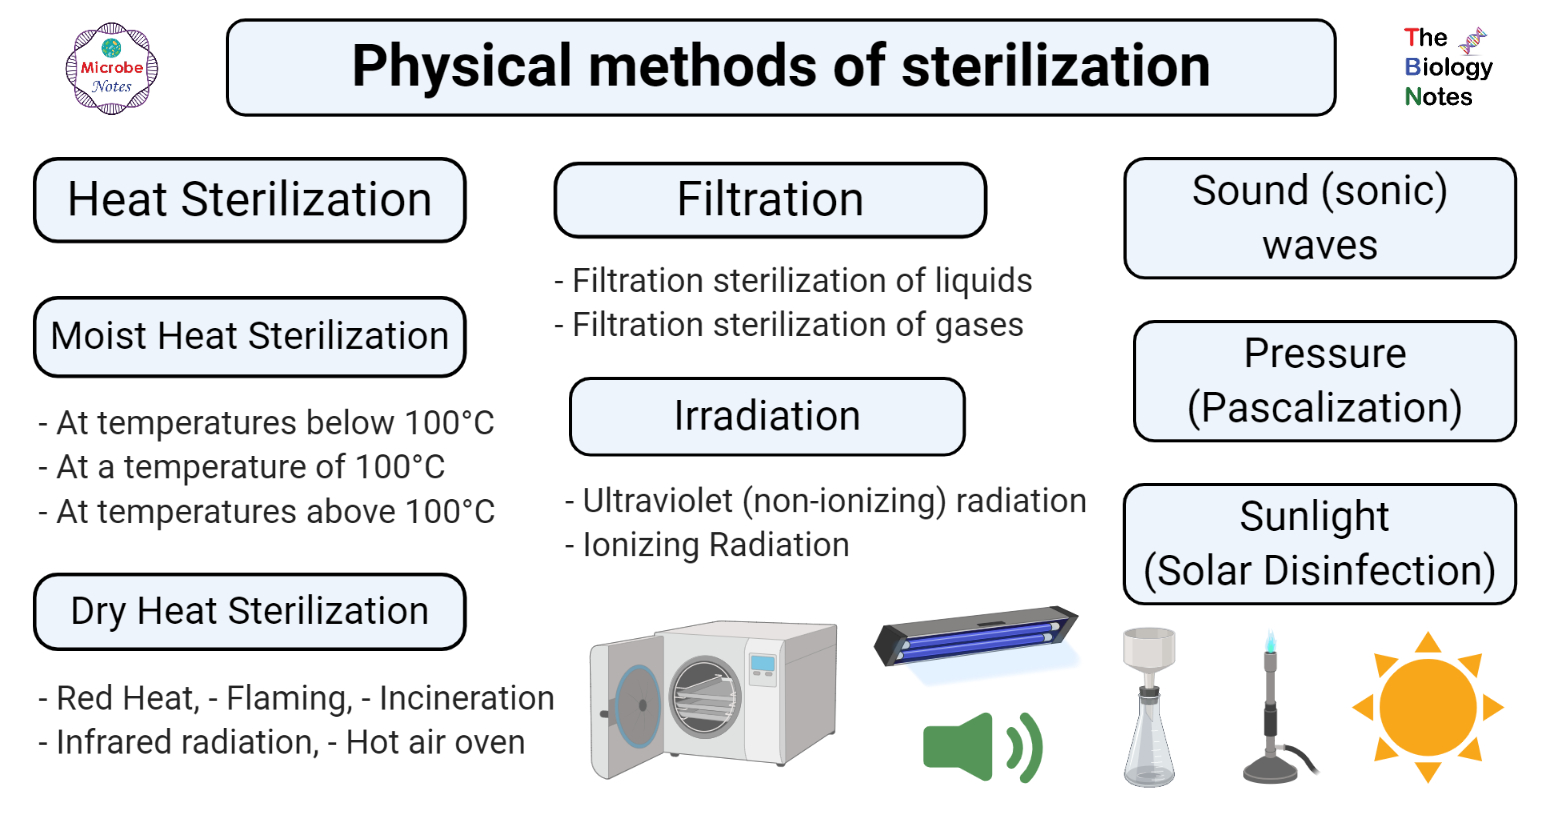 Physical methods of sterilization- Heat, Filtration, Radiation